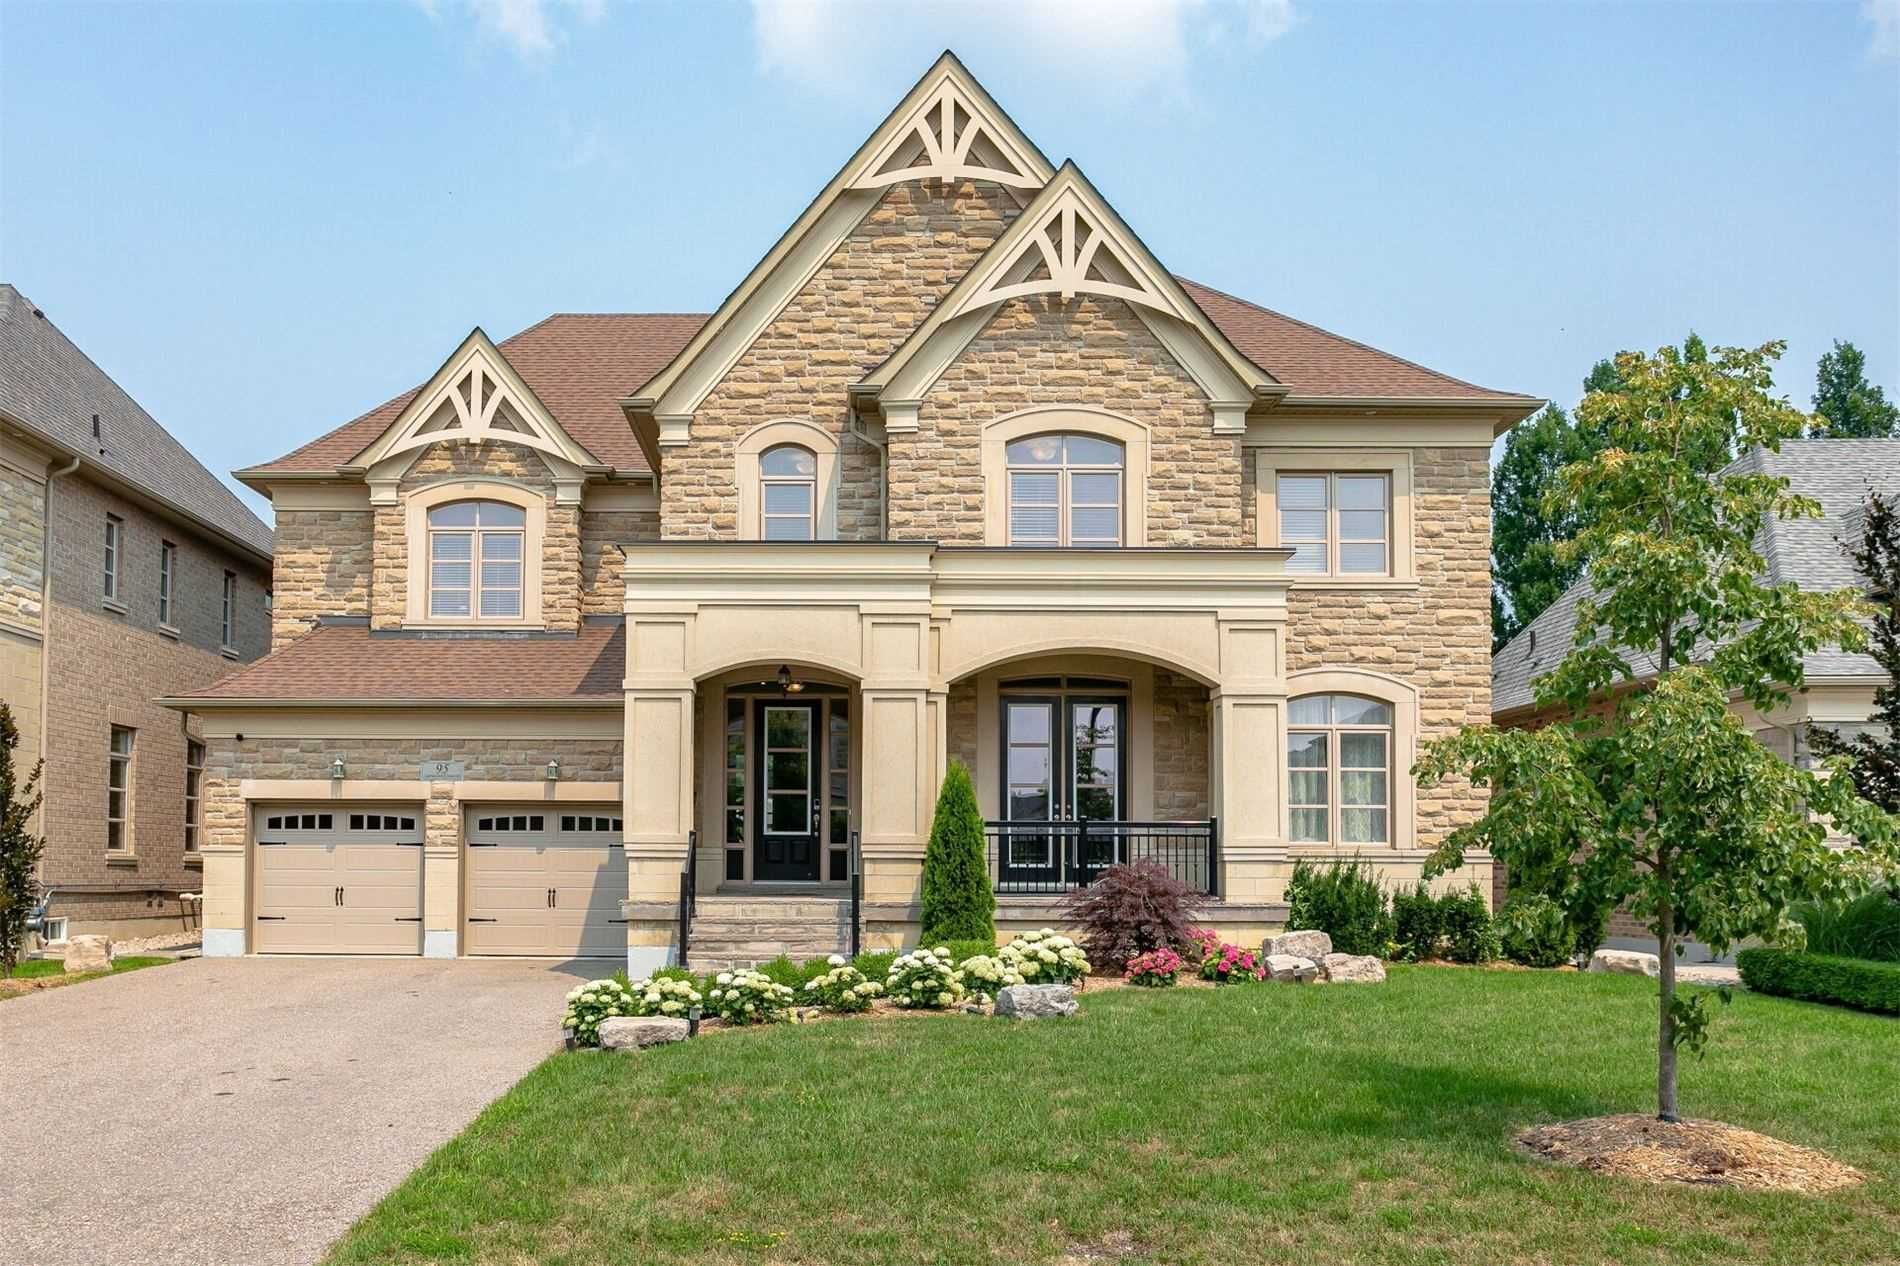 Main Photo: 95 Sarracini Cres in Vaughan: Islington Woods Freehold for sale : MLS®# N5318300